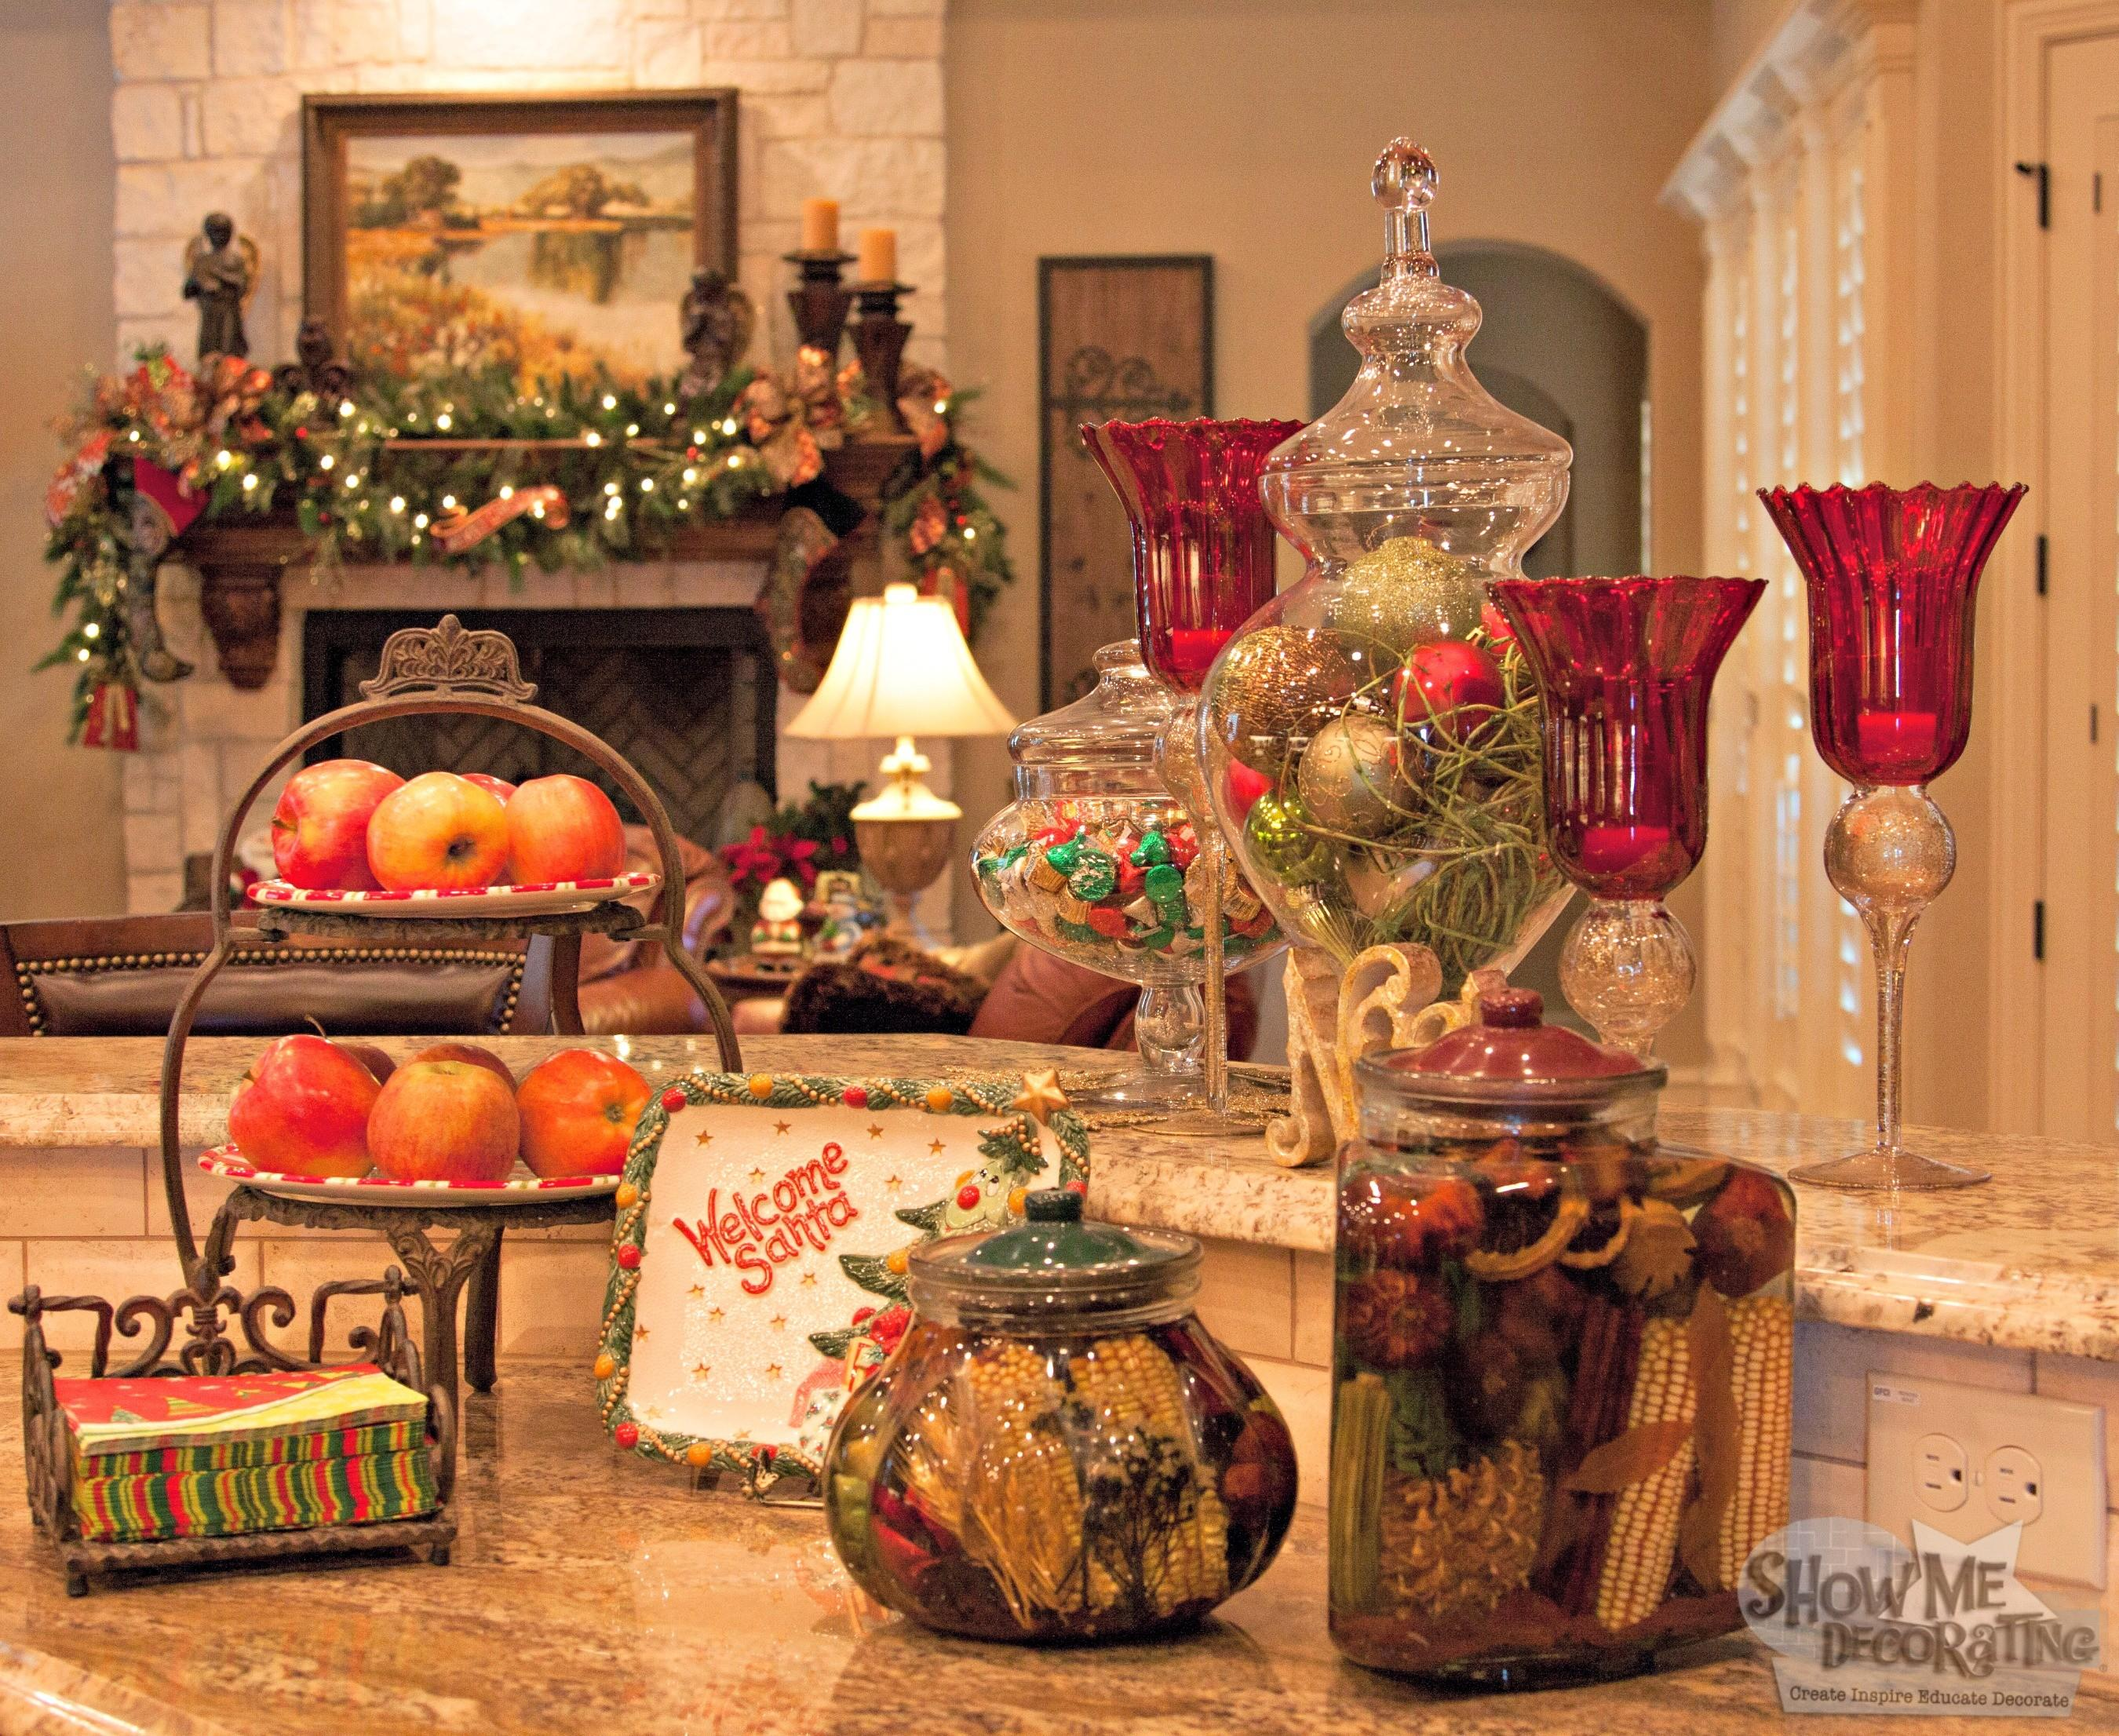 Christmas Trees Show Decorating